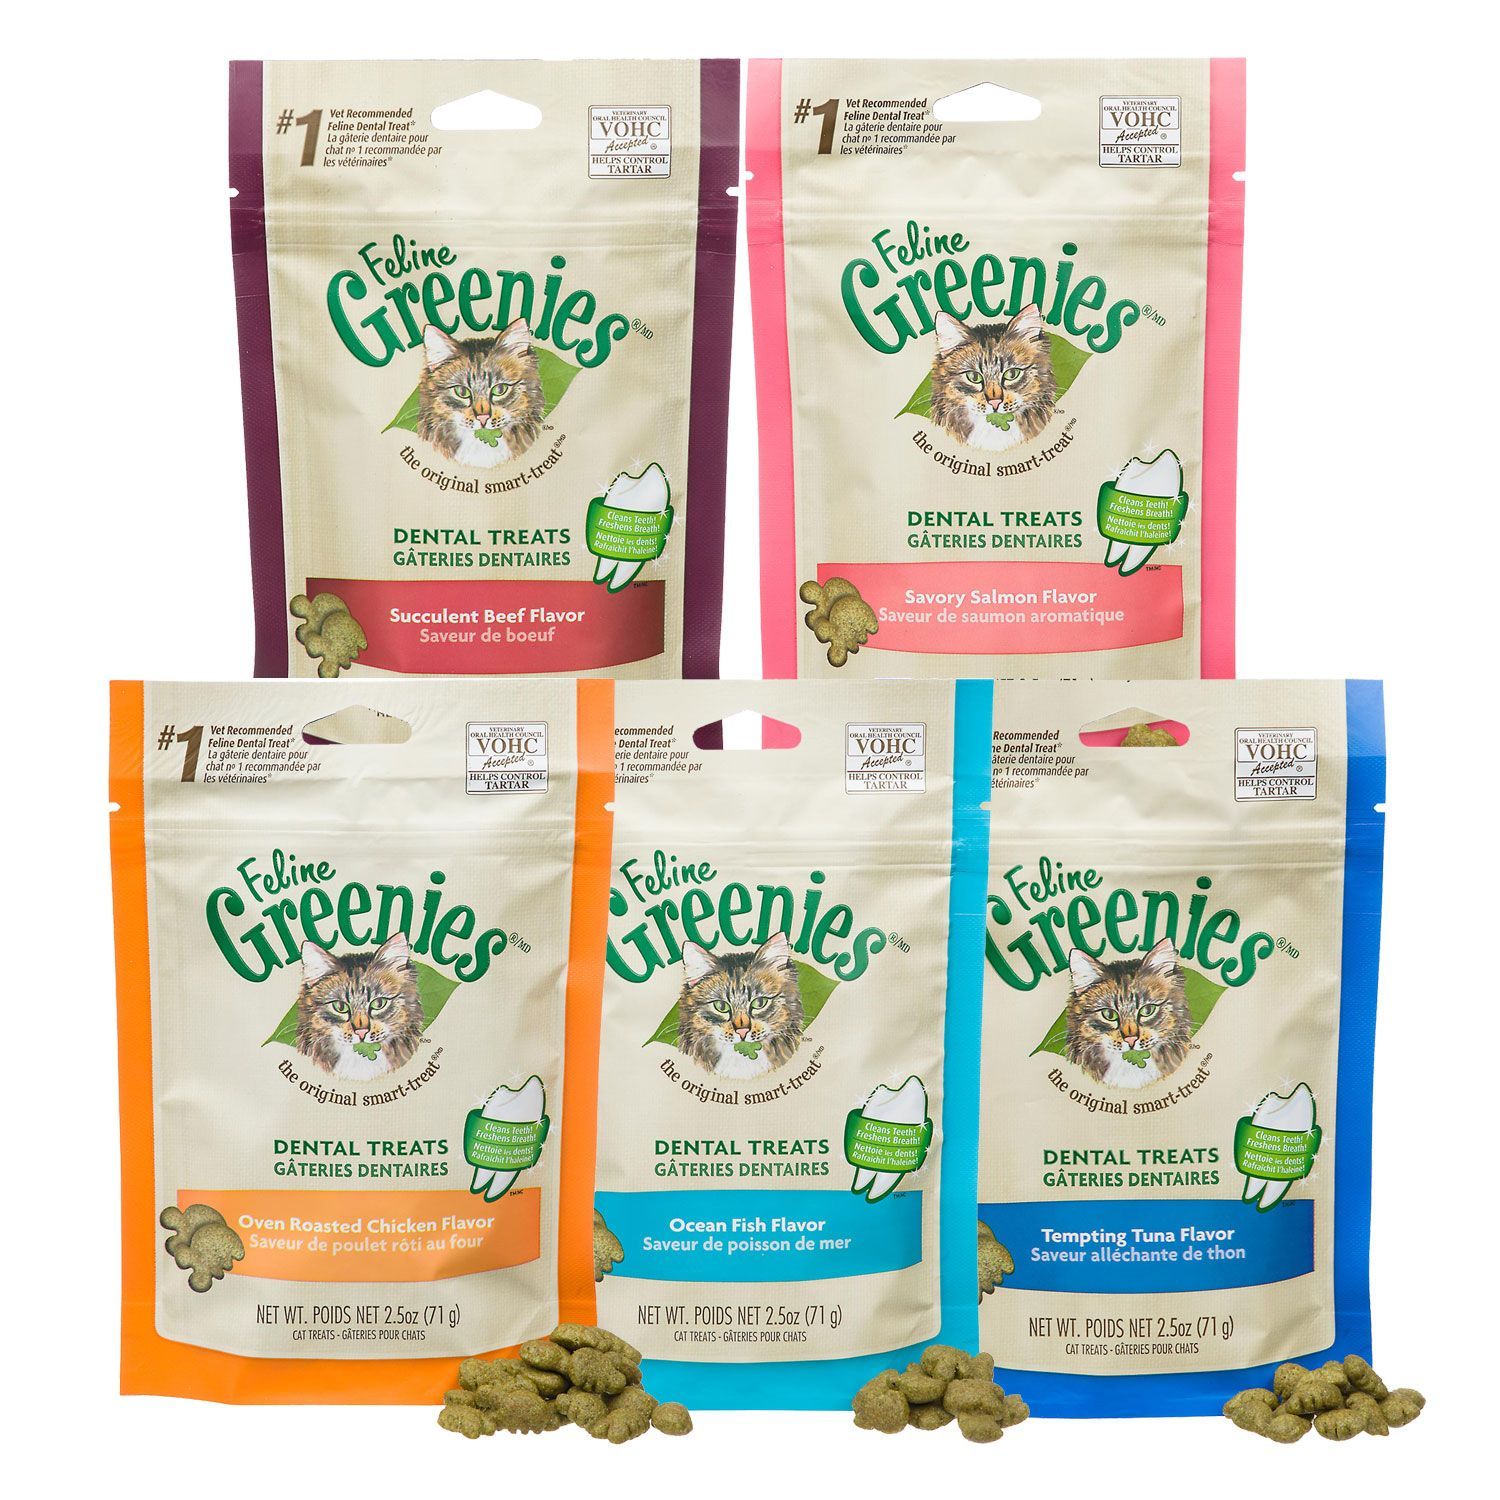 Feline Greenies Dental Treats For Cats Dental Treats Pet Treats Recipes Greenies